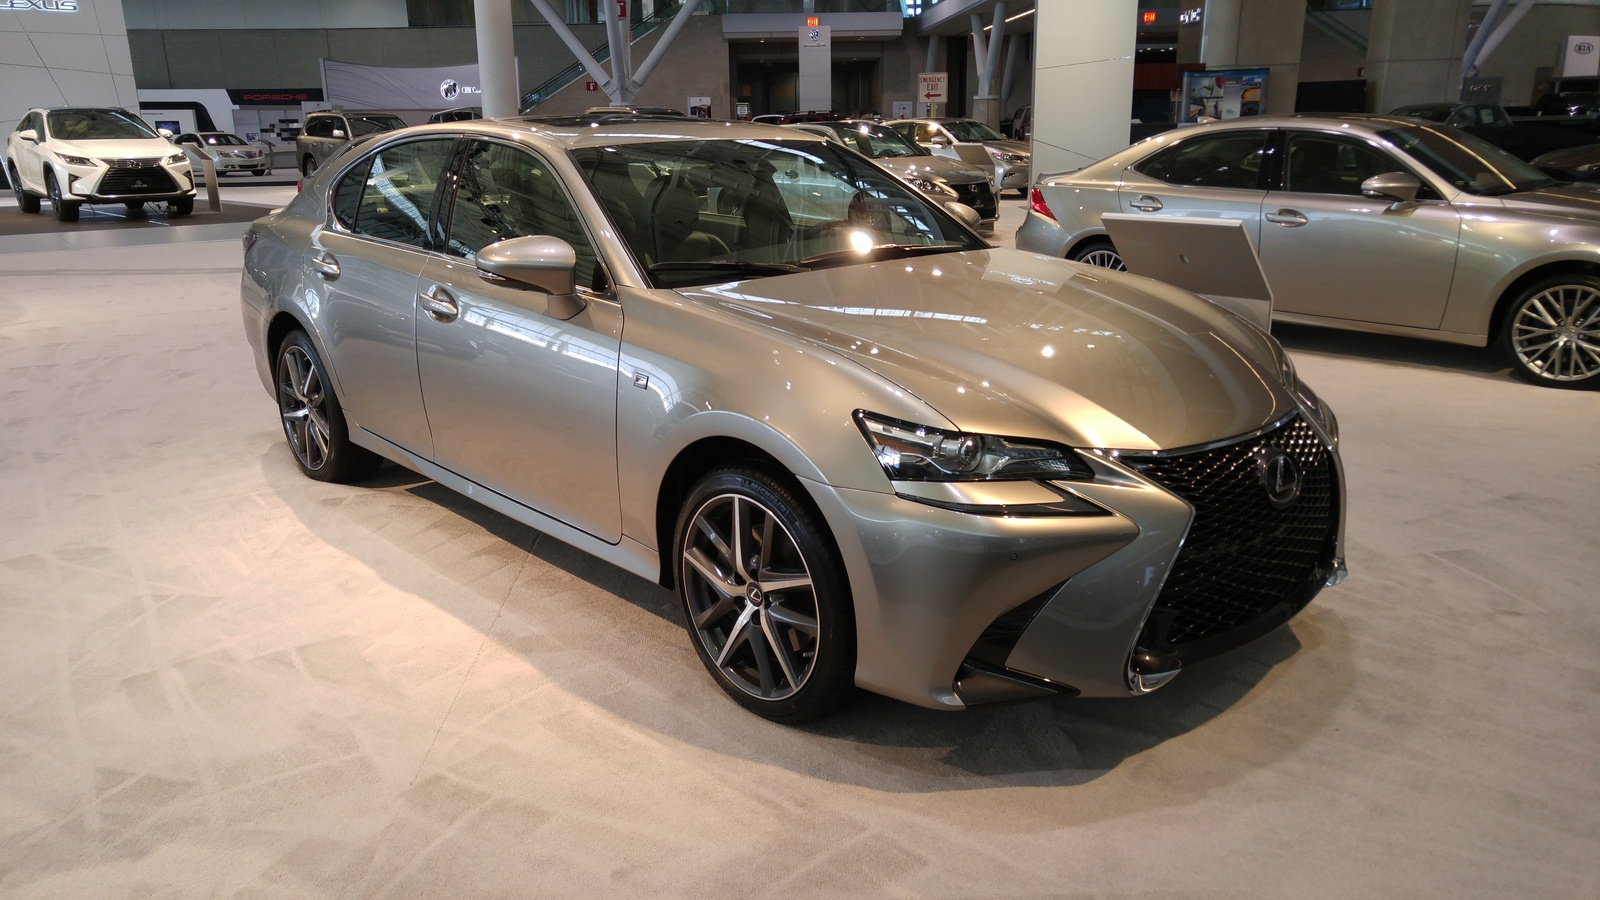 a sport on inside gs with images thoughts test lexus i lowered drove ideas today f and